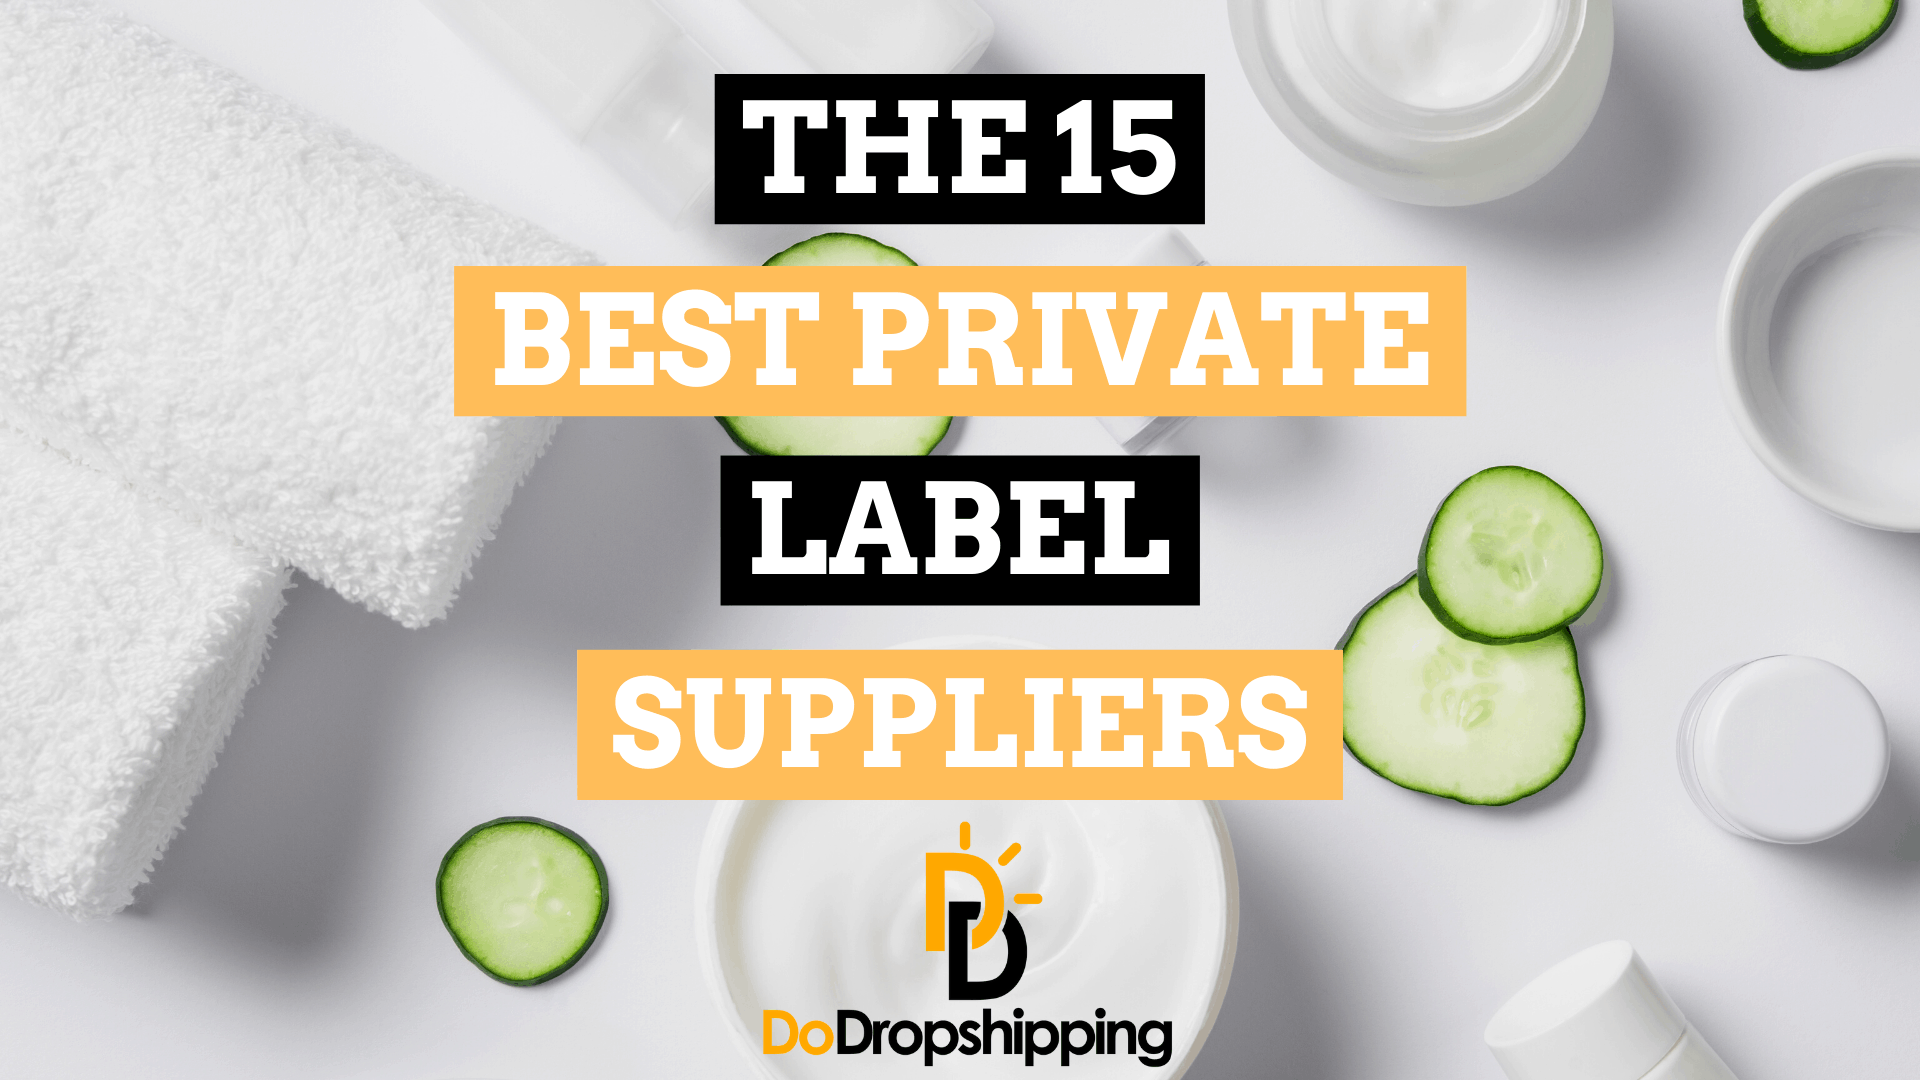 The 15 Best Private Label Dropshipping Suppliers